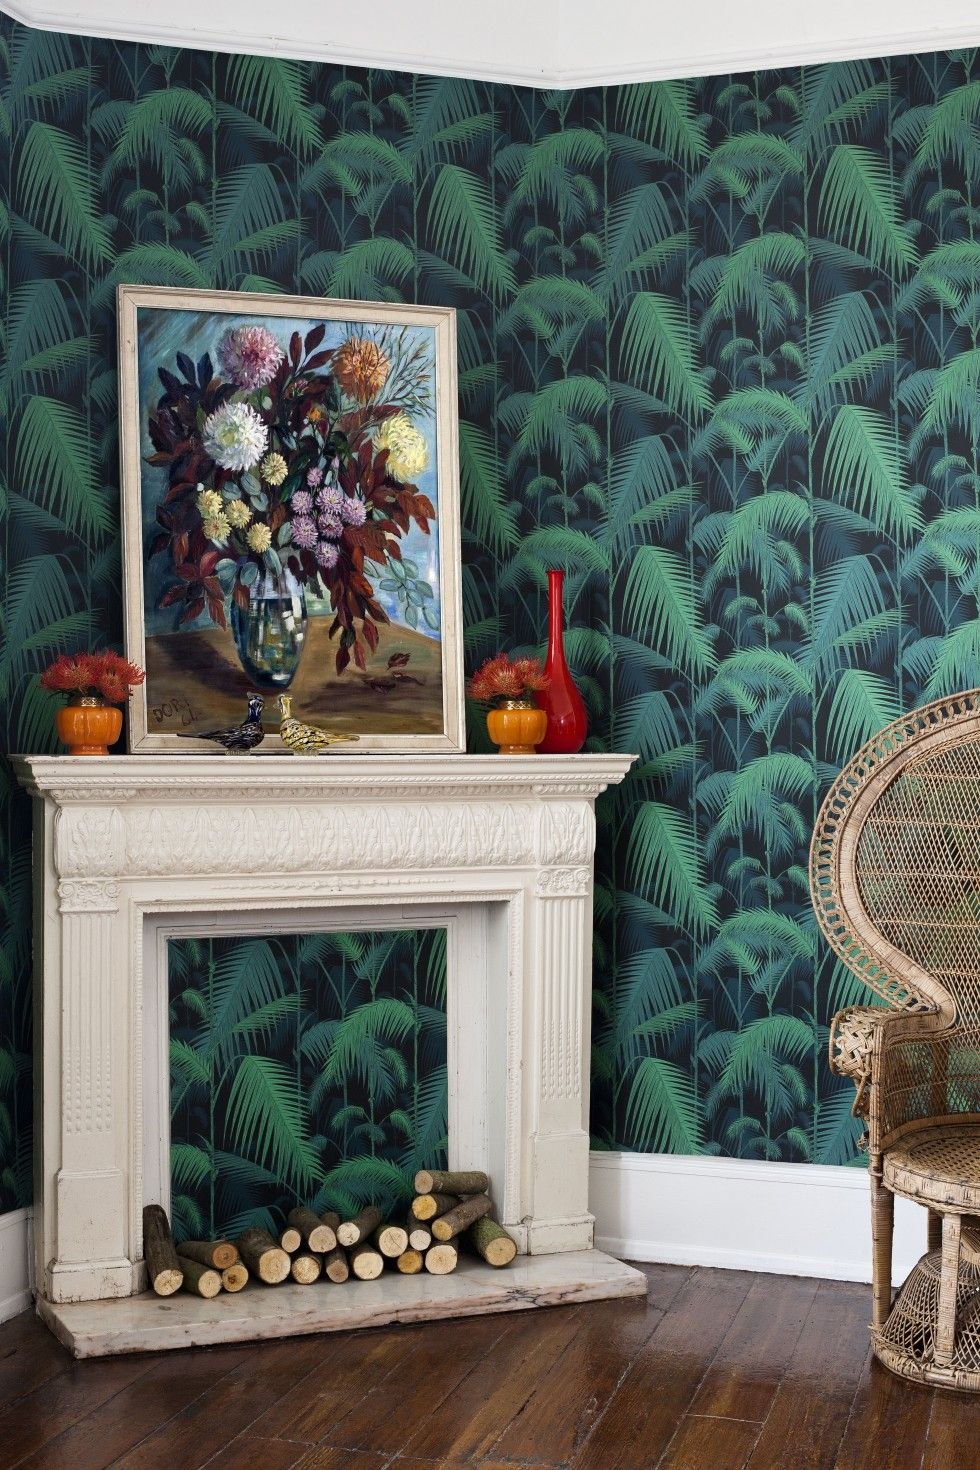 Pin by Nikki Tempest on Walls Cole and son wallpaper